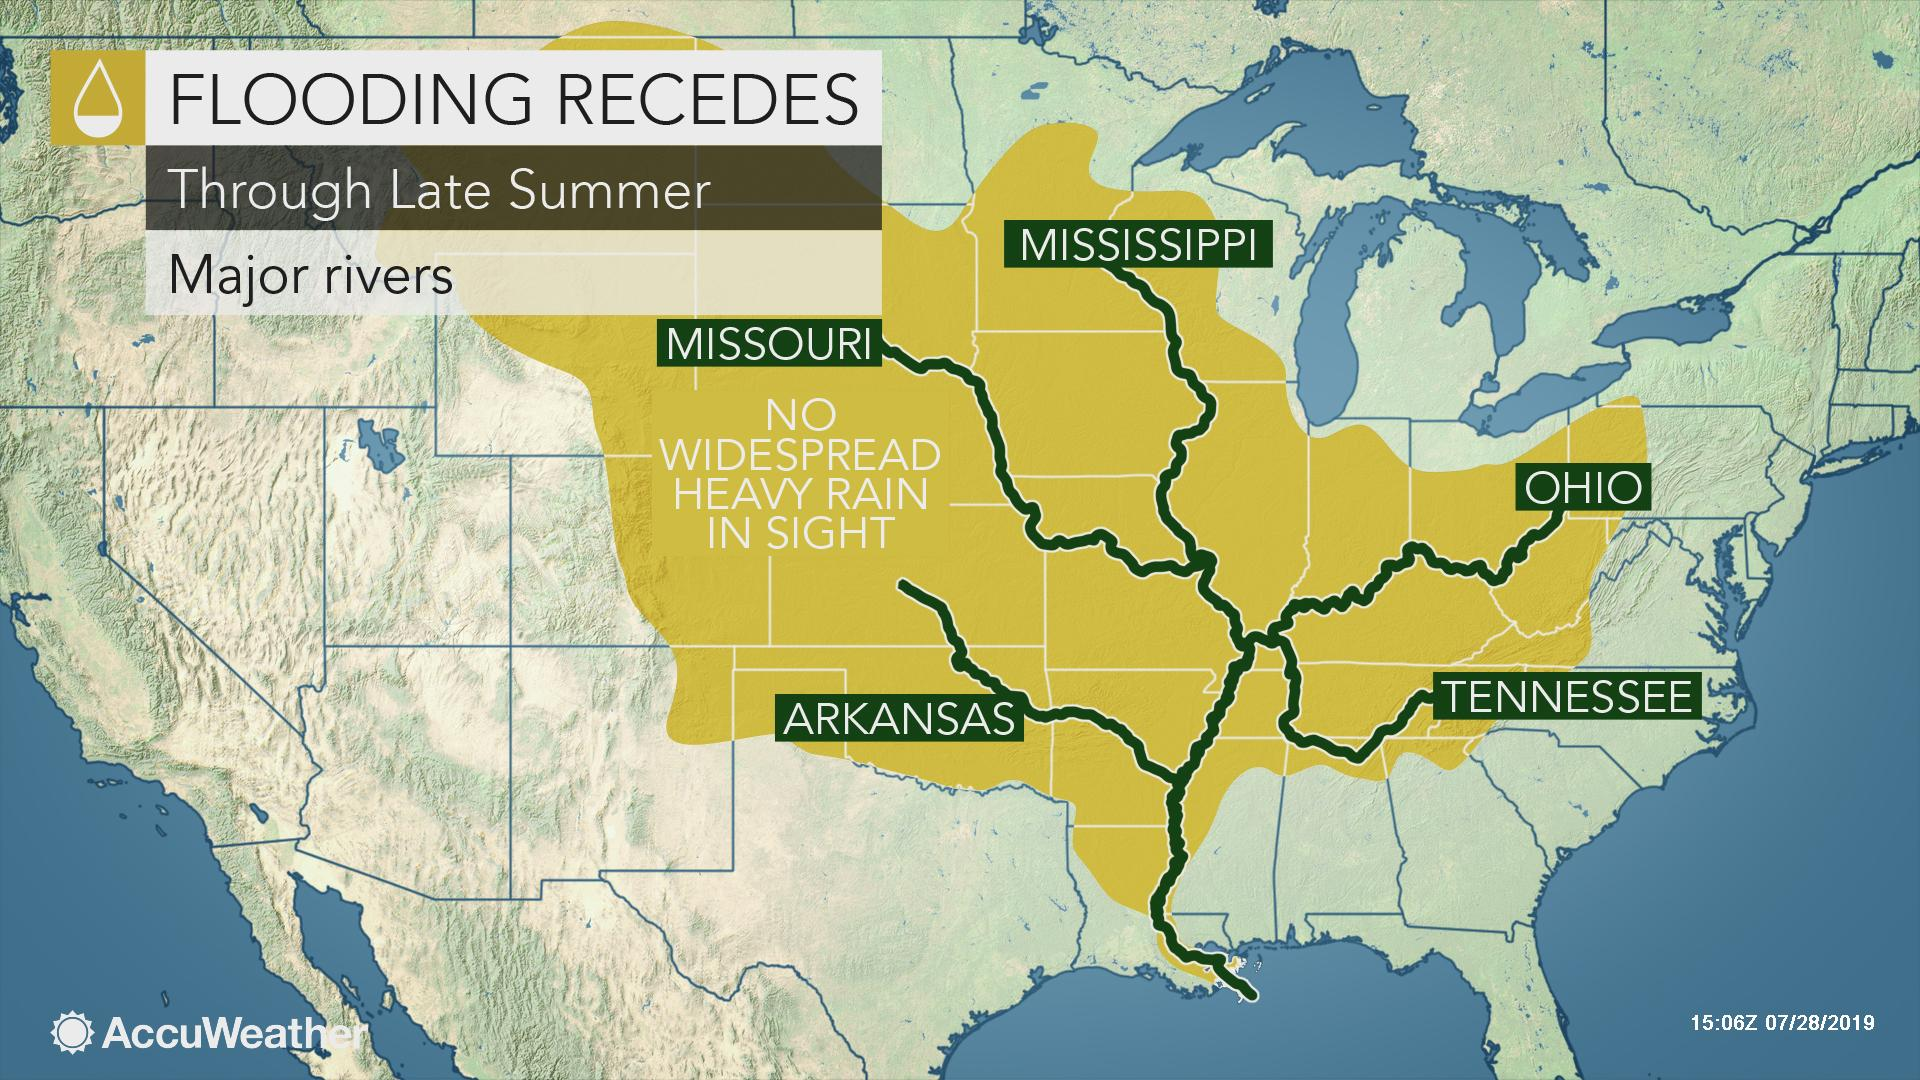 mississippi river world map Lower Mississippi River To Fall Below Flood Stage After Nearly 7 mississippi river world map